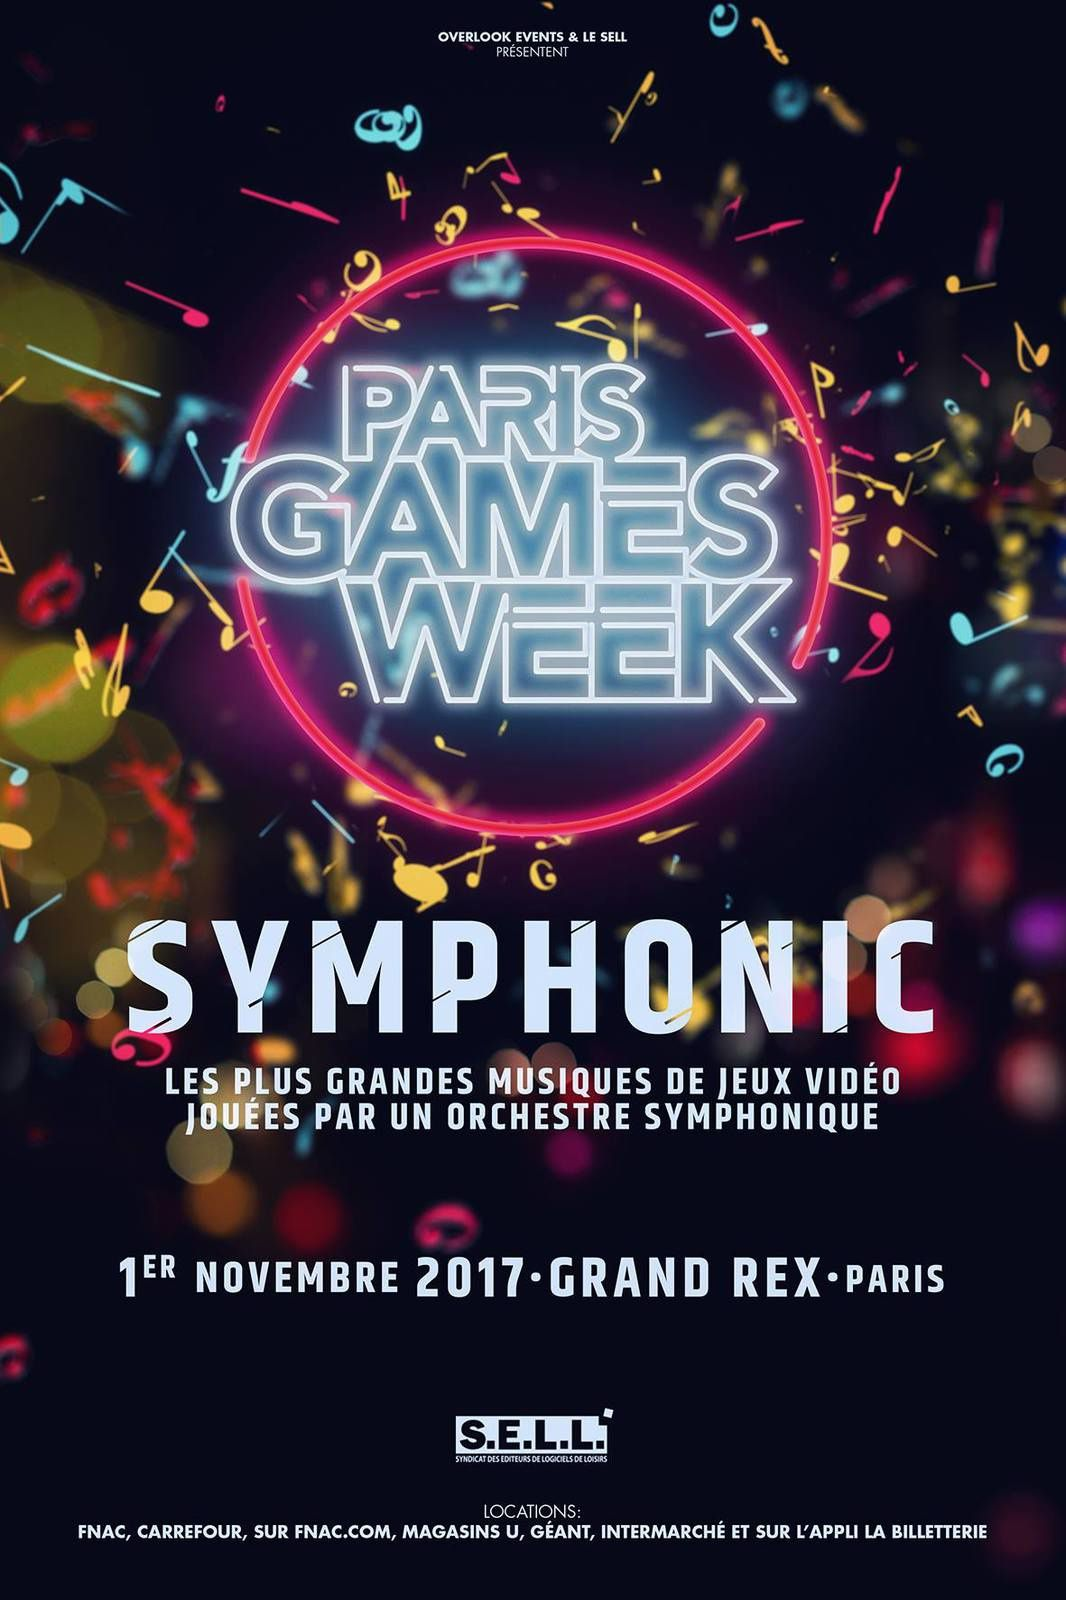 Filme Rayman regarding paris games week symphonic] un moment magique et inoubliable - le